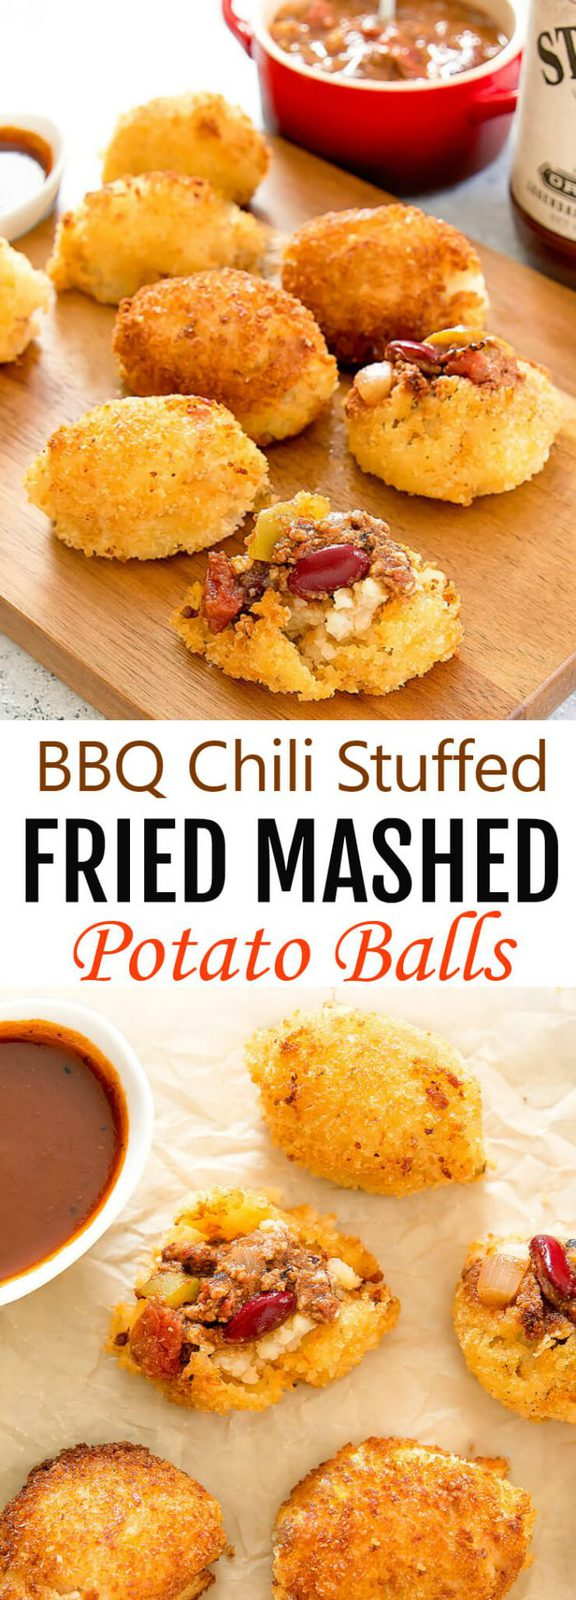 Fried Mashed Potato Balls stuffed with BBQ Chili